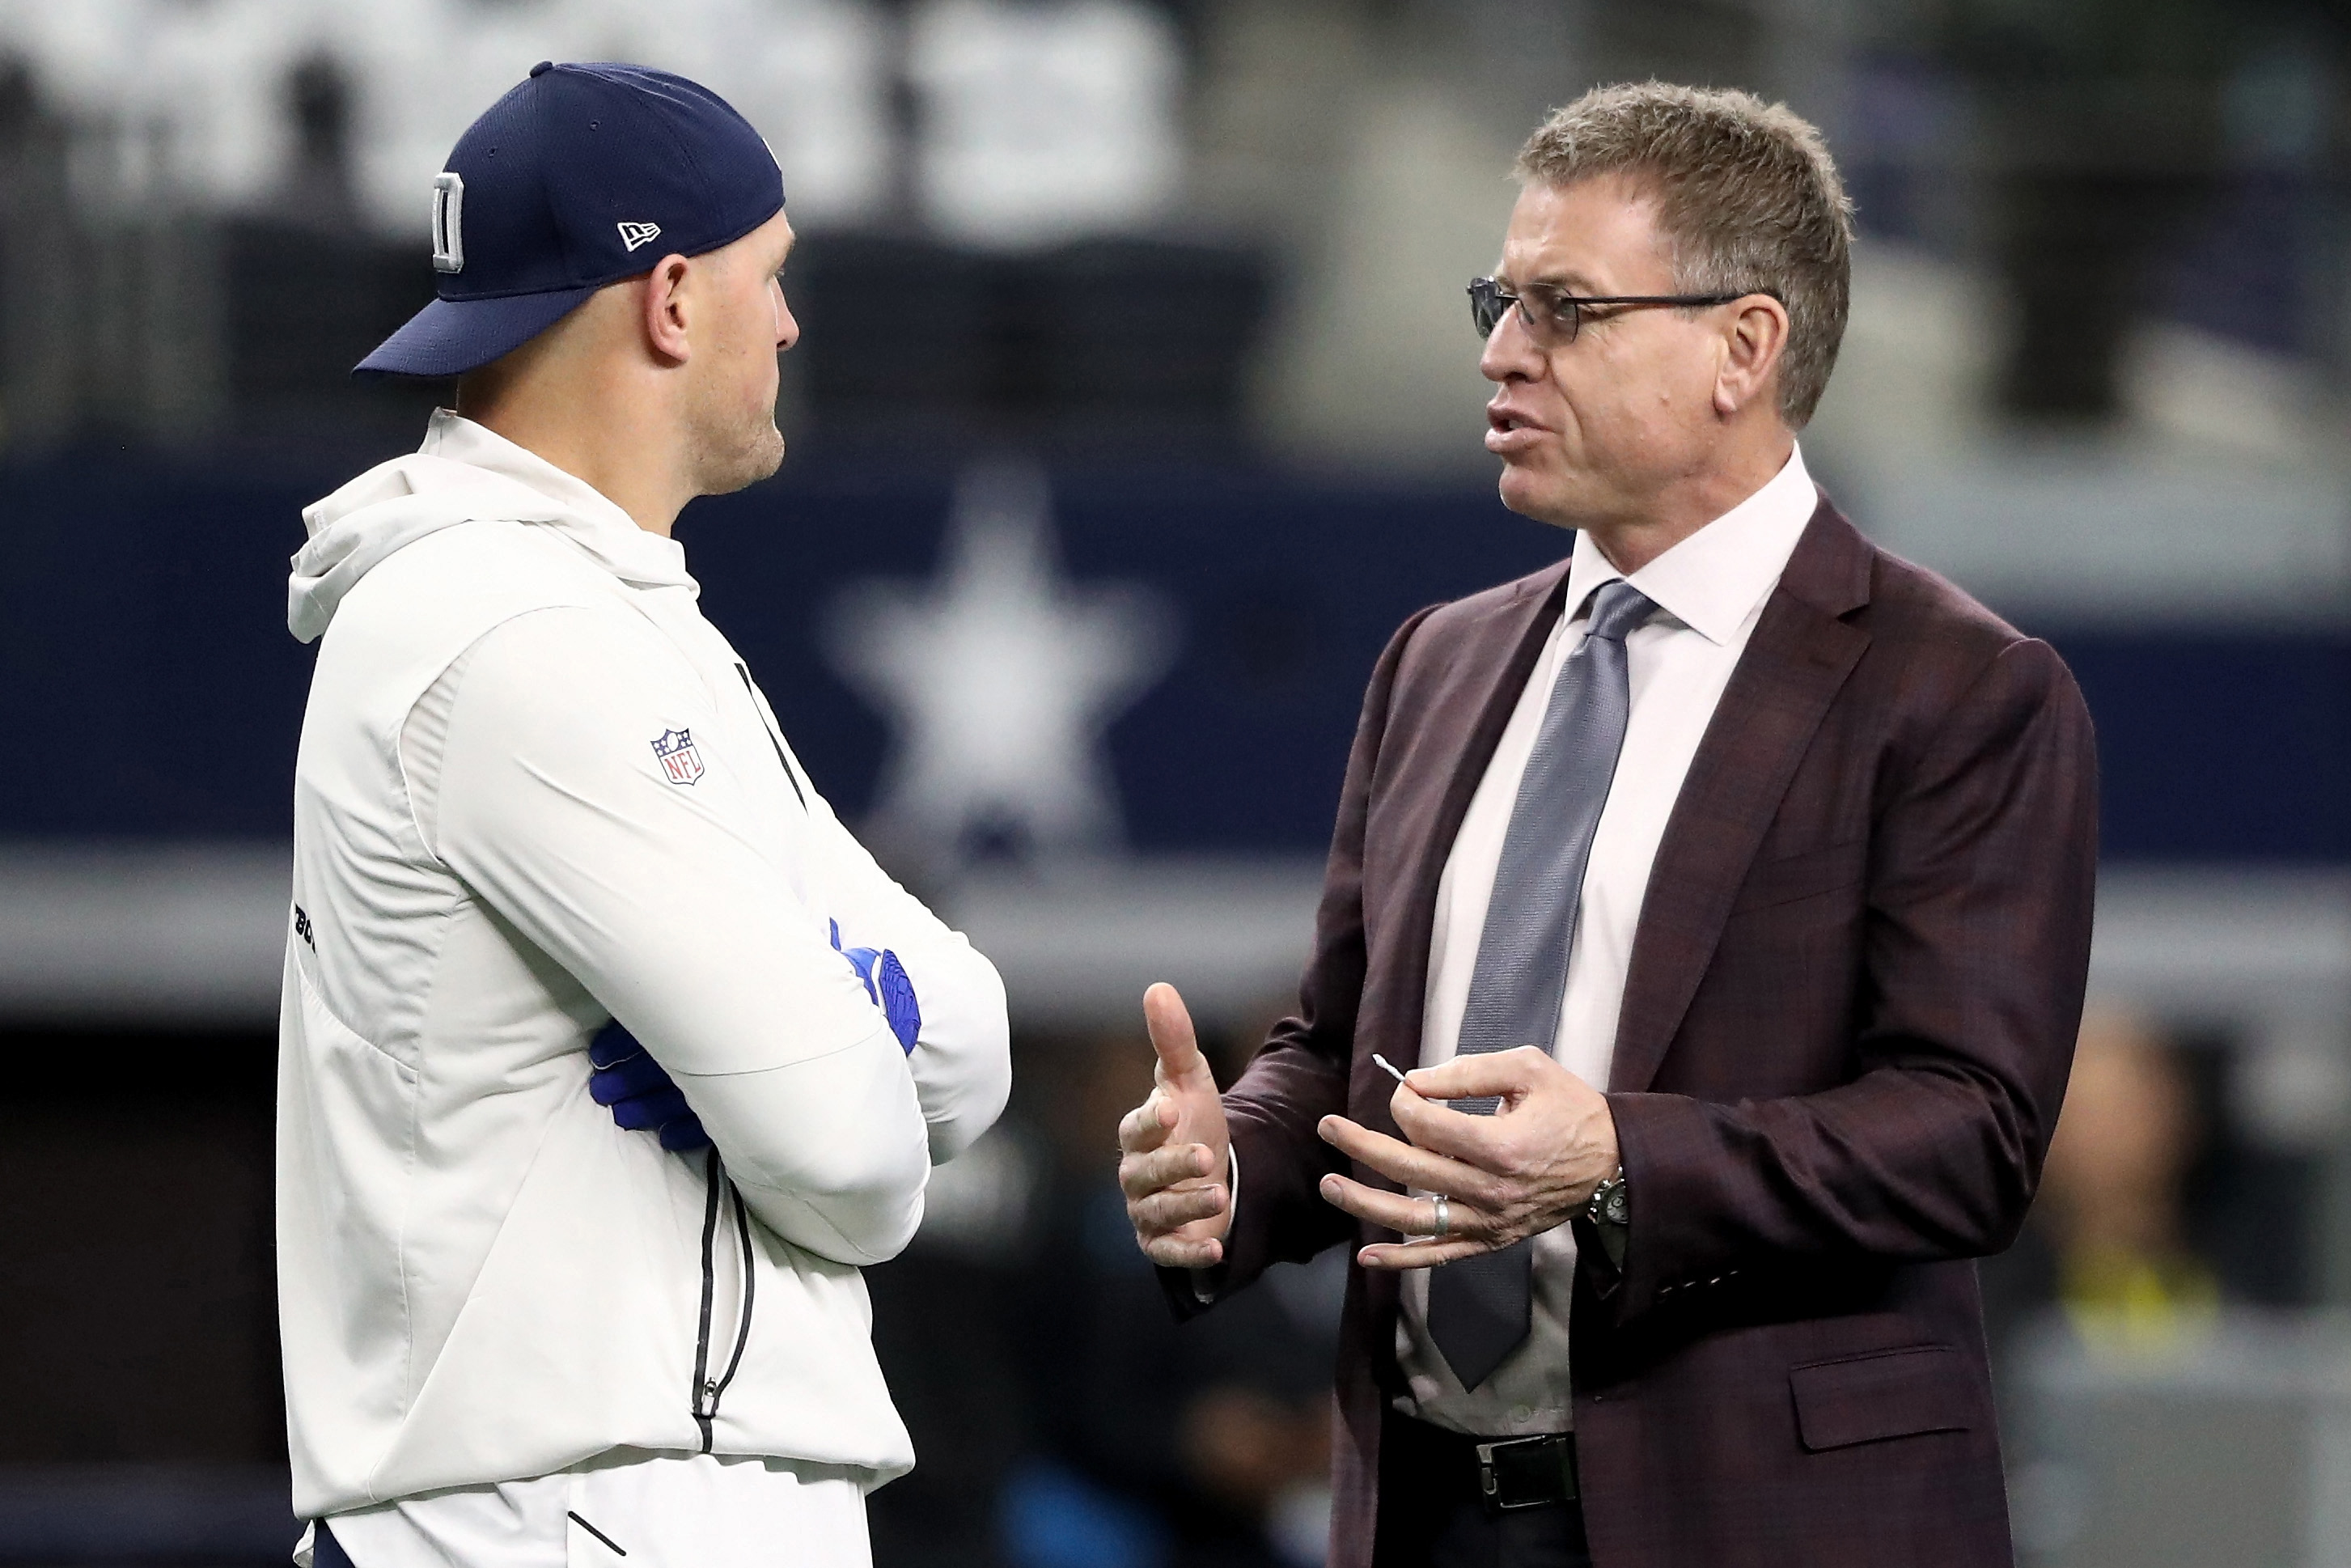 Troy Aikman's words may have been twisted.